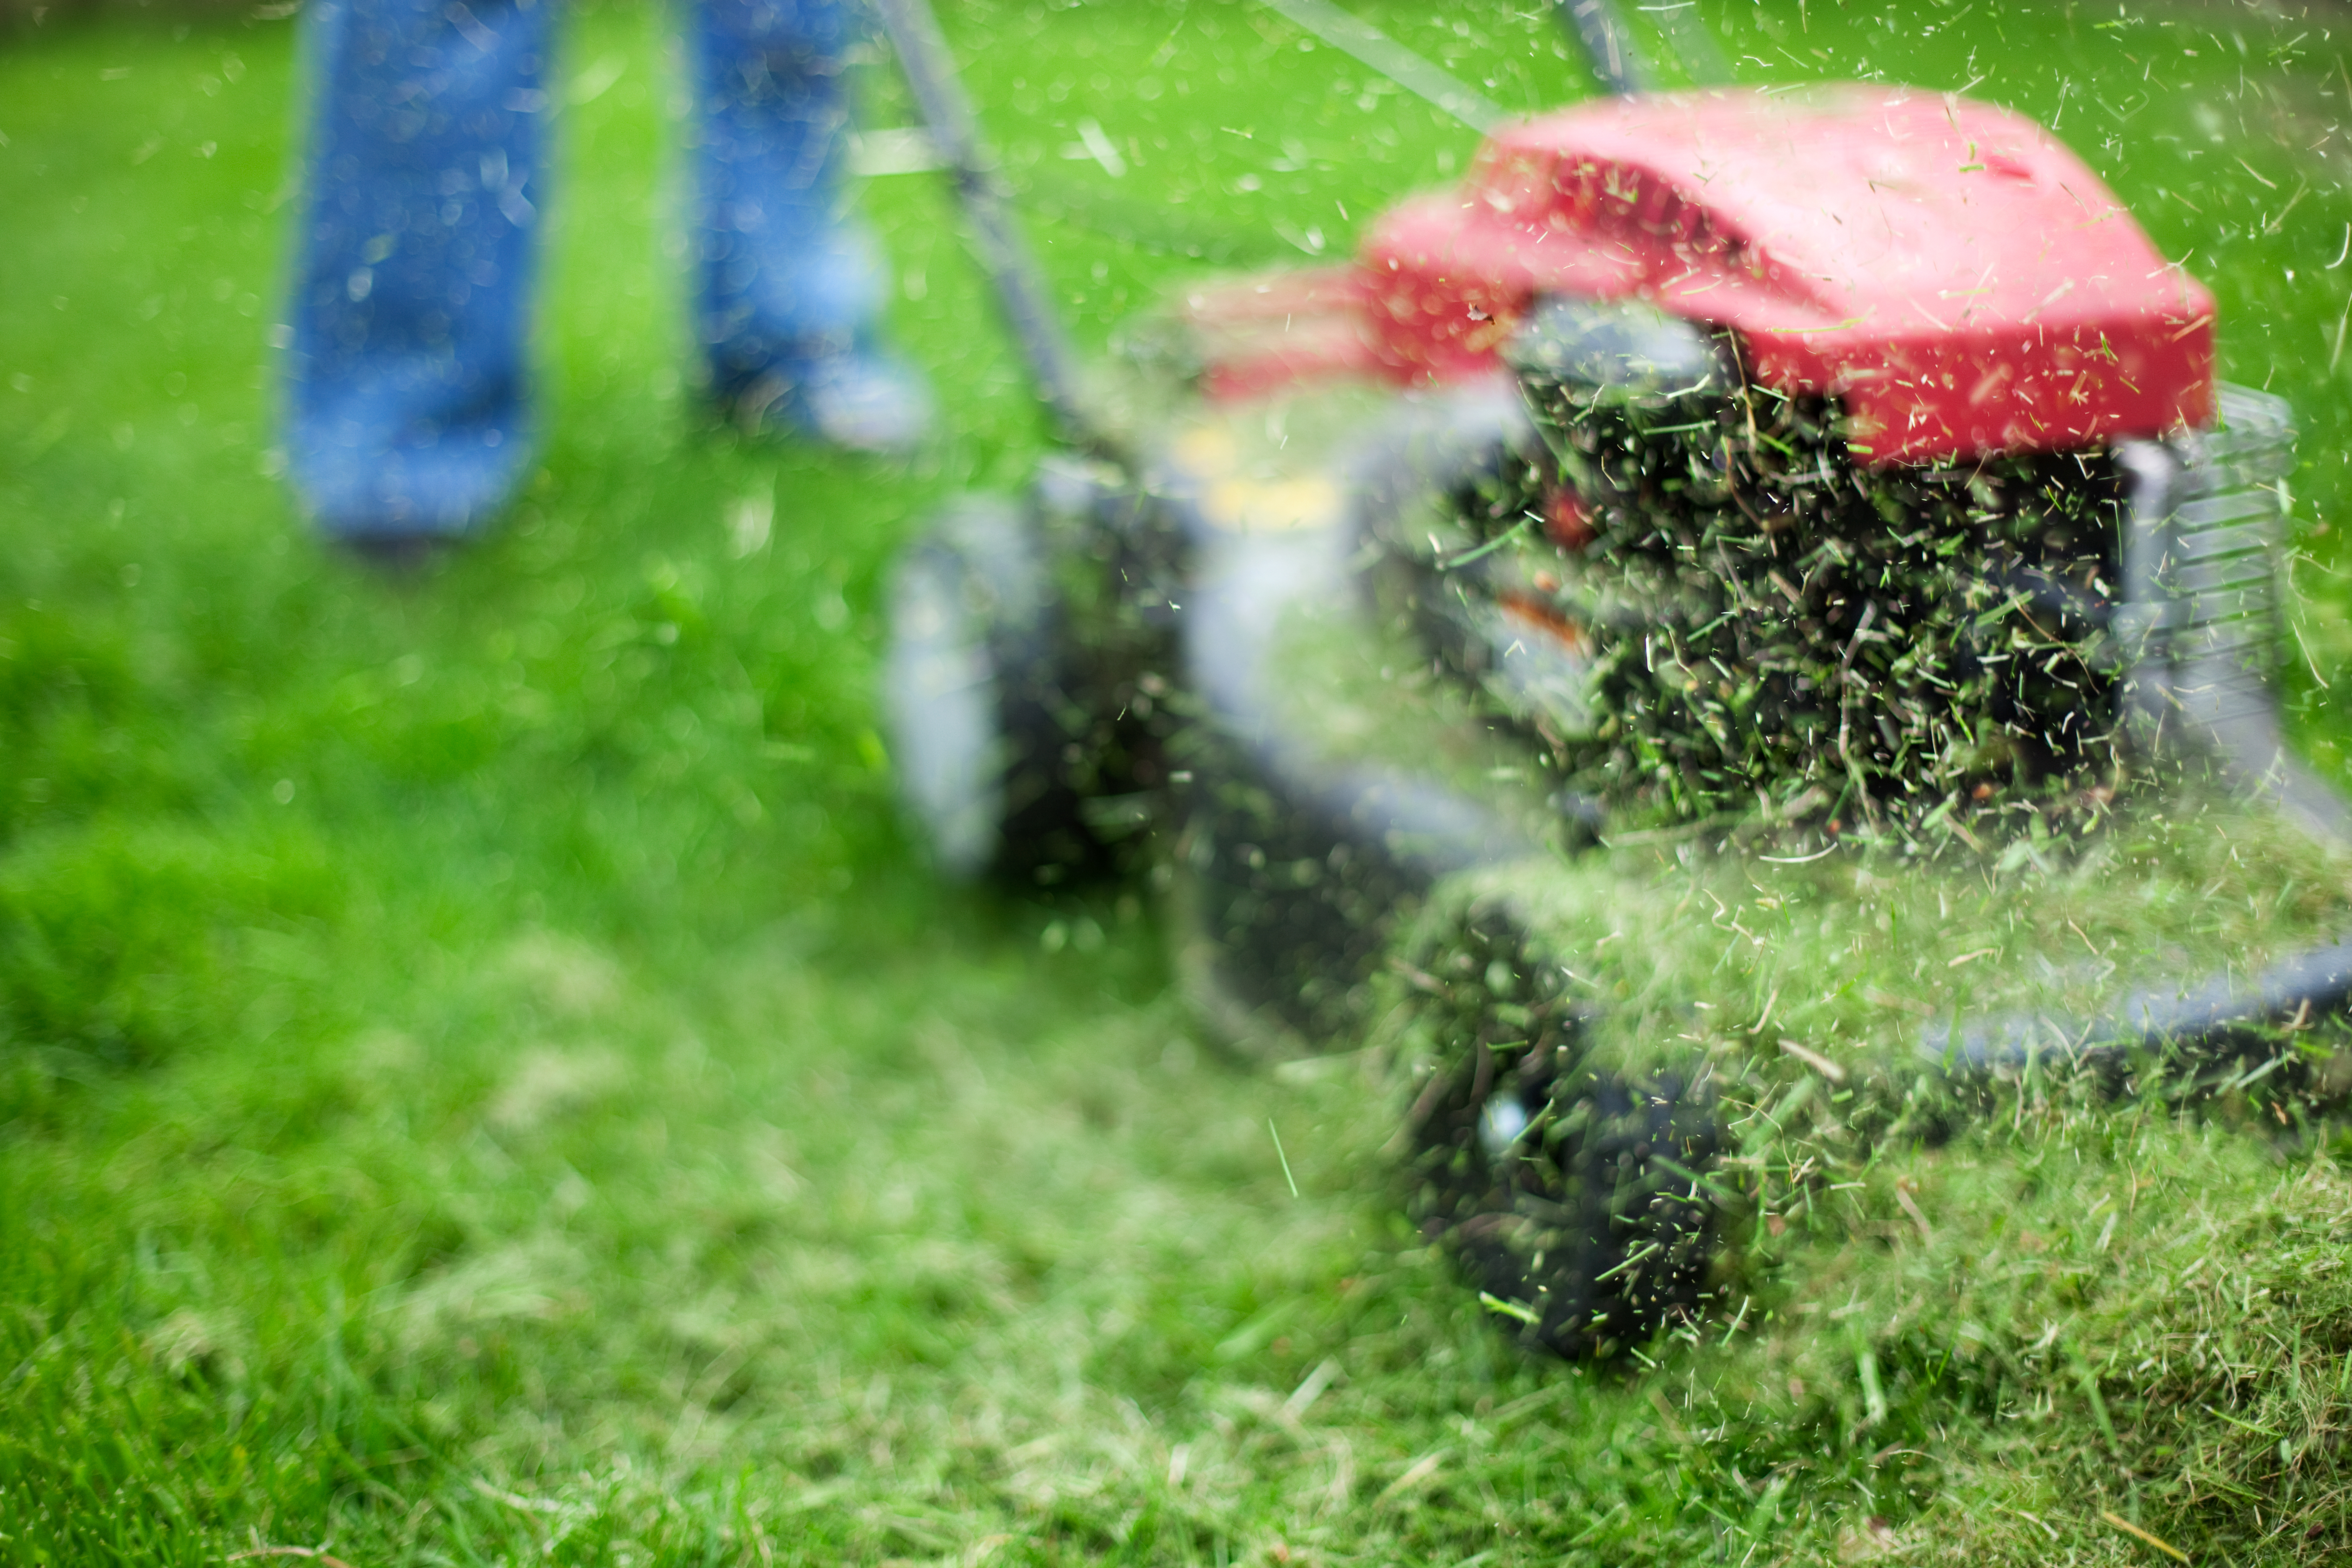 How to Adjust the Cutting Deck of a Lawn Mower | Hunker